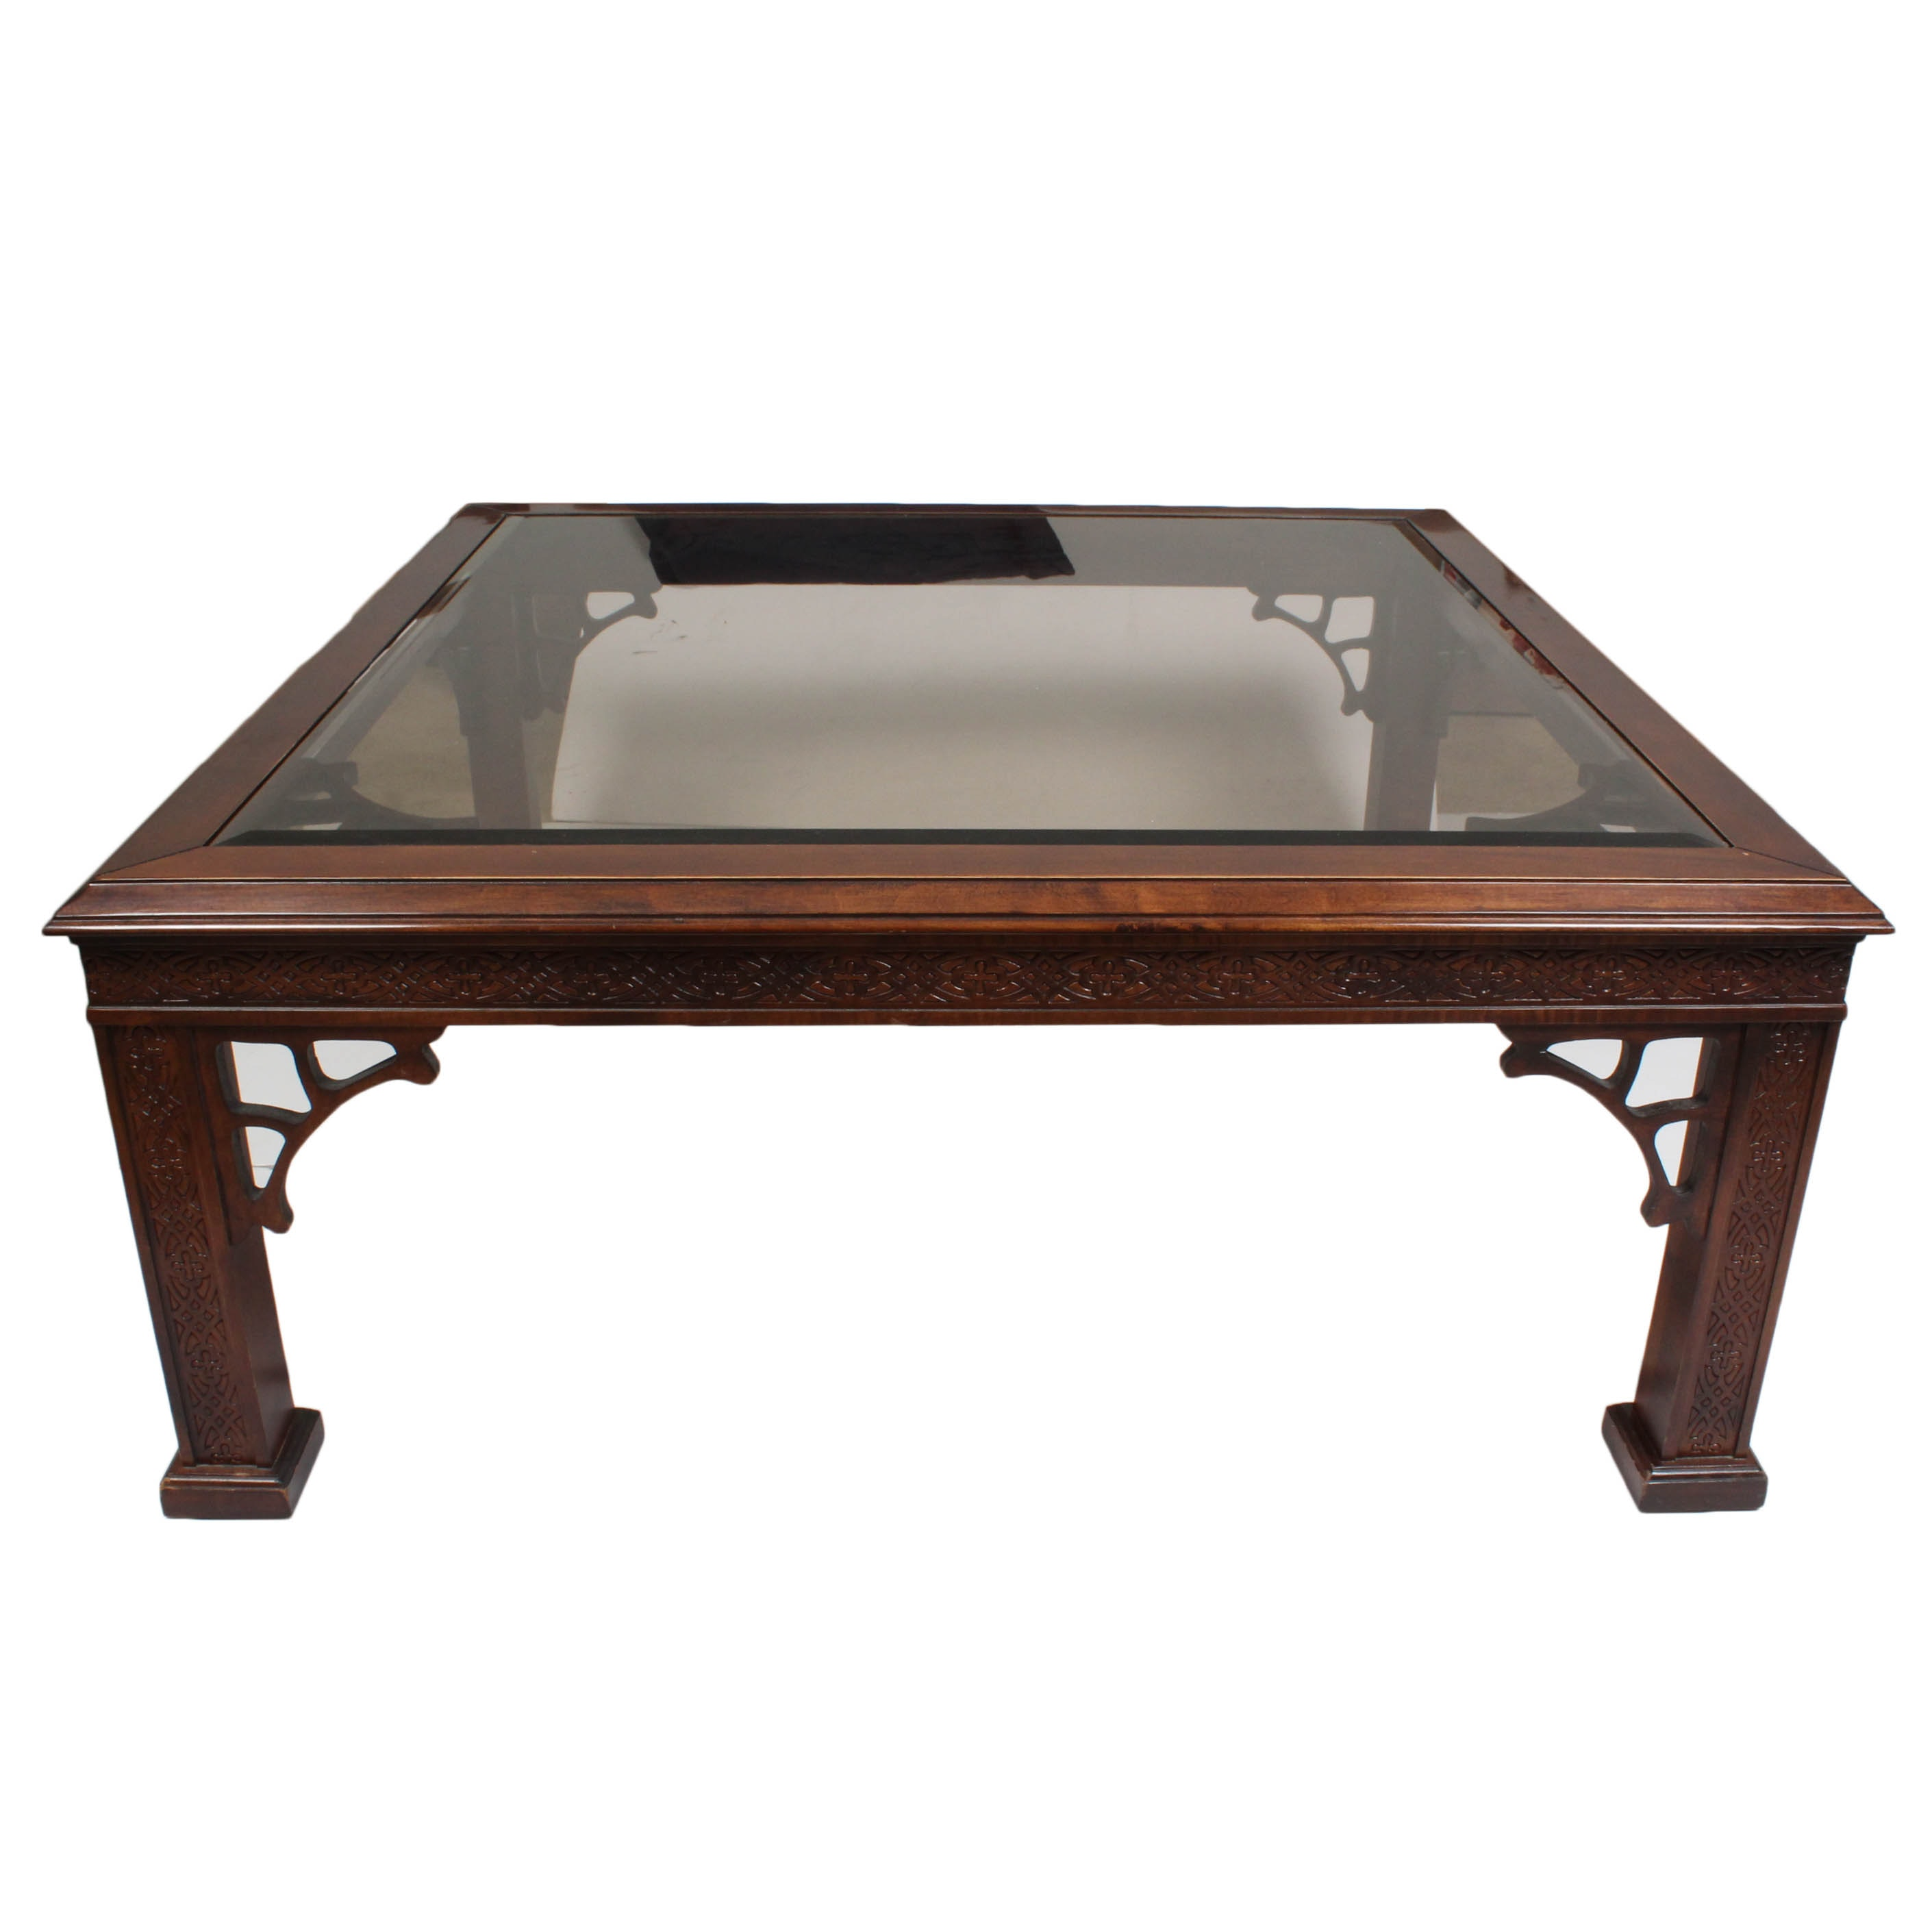 Ornate Wood Carved Glass Top Coffee Table